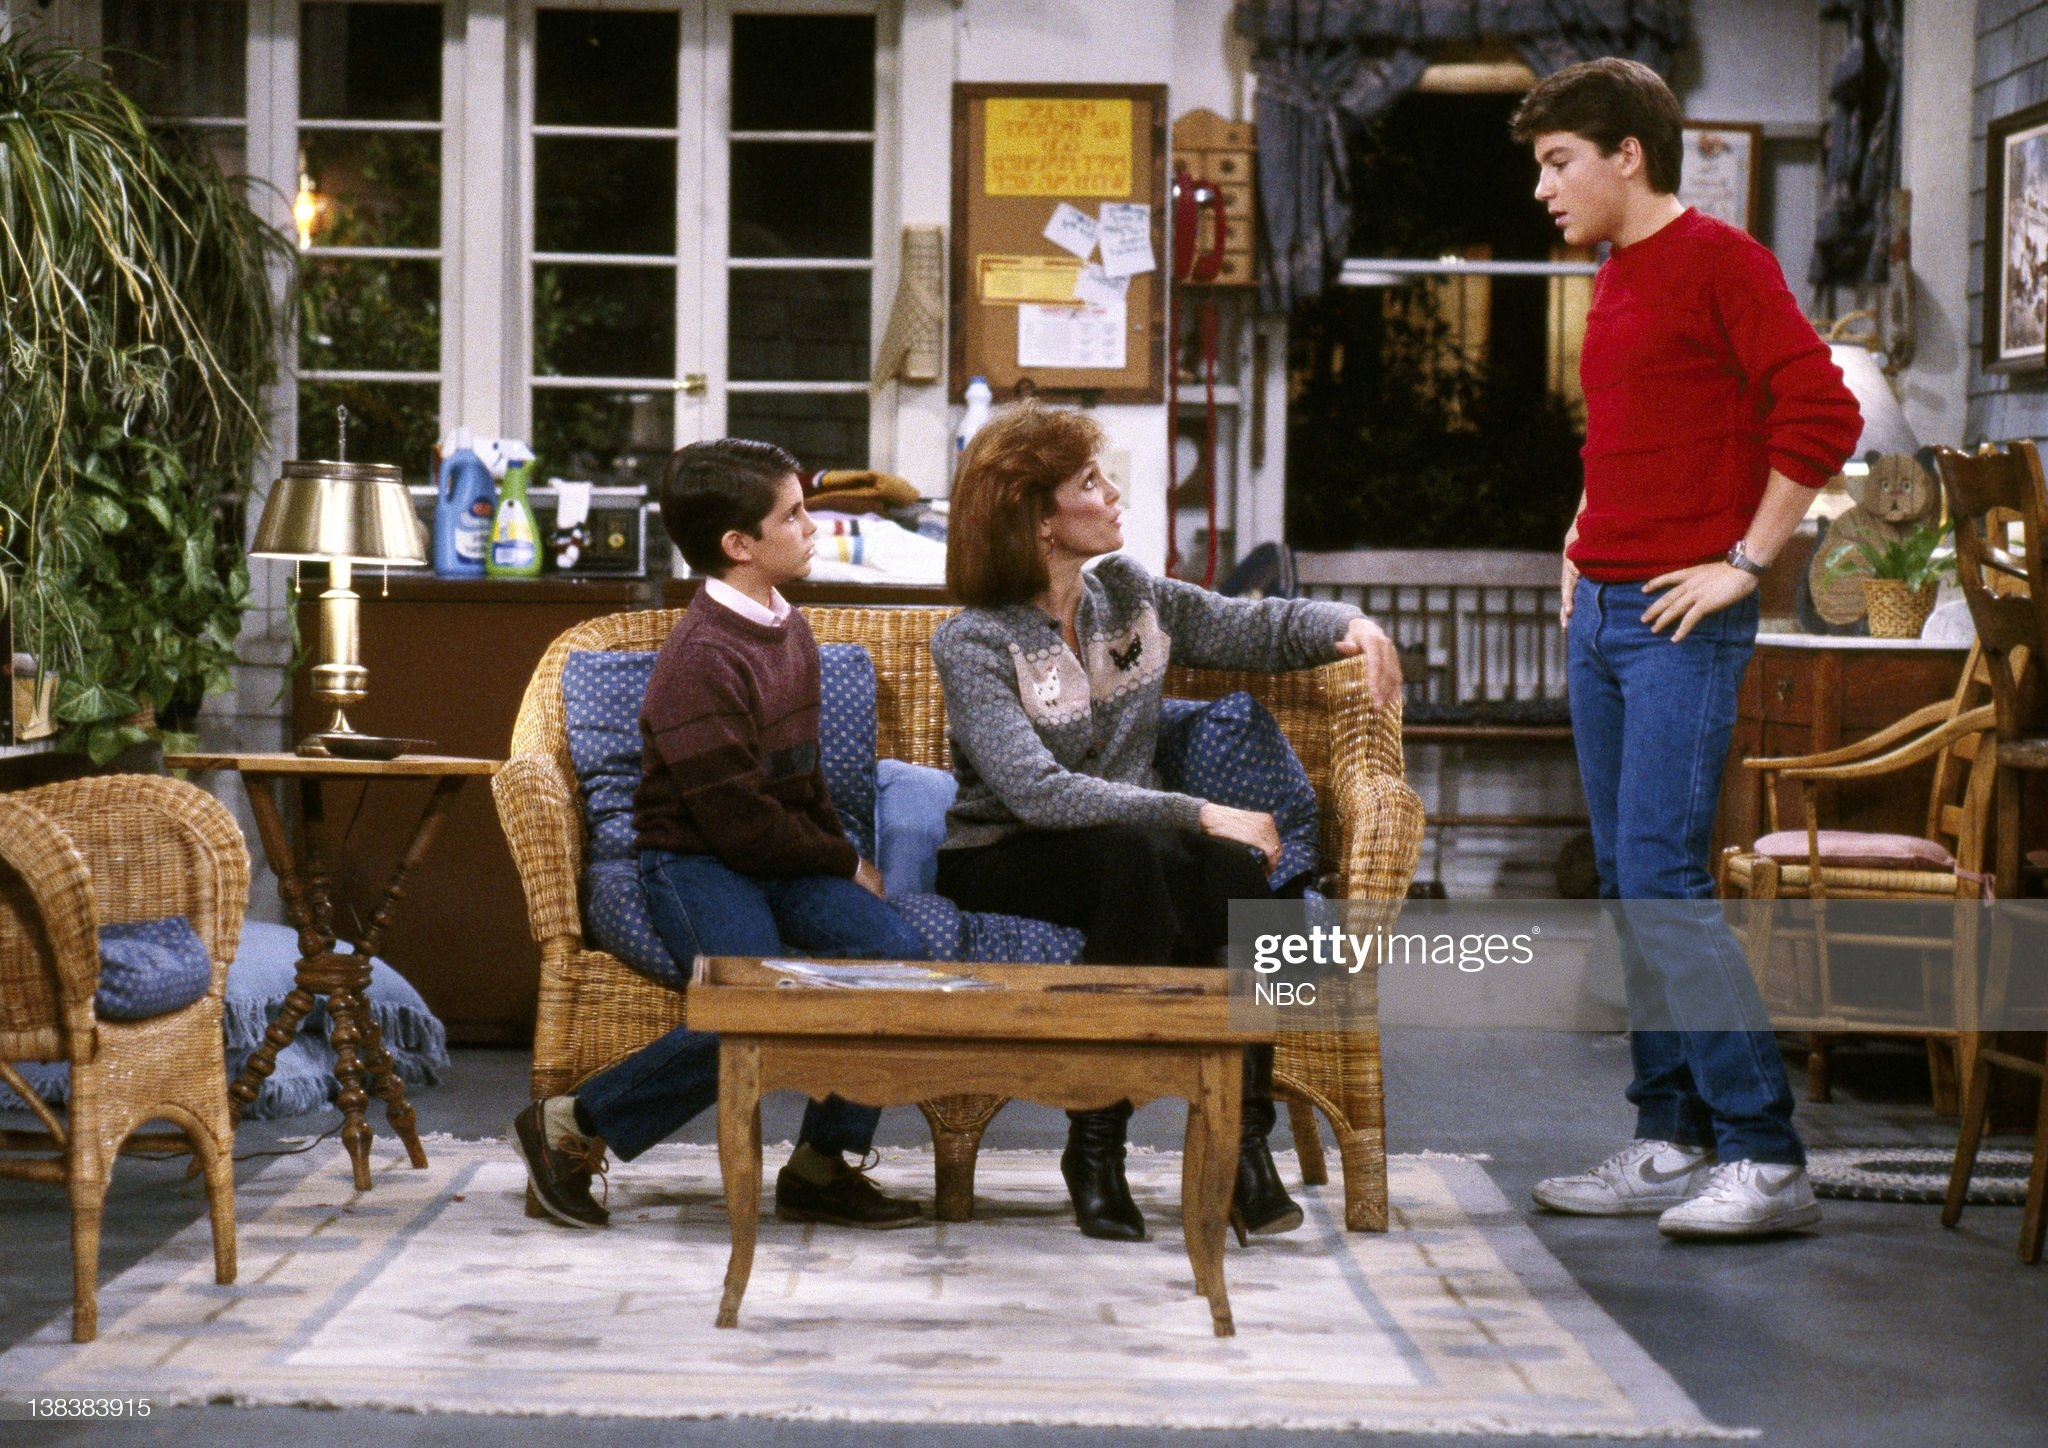 one-of-the-boys-episode-104-pictured-jeremy-licht-as-mark-hogan-as-picture-id138383915